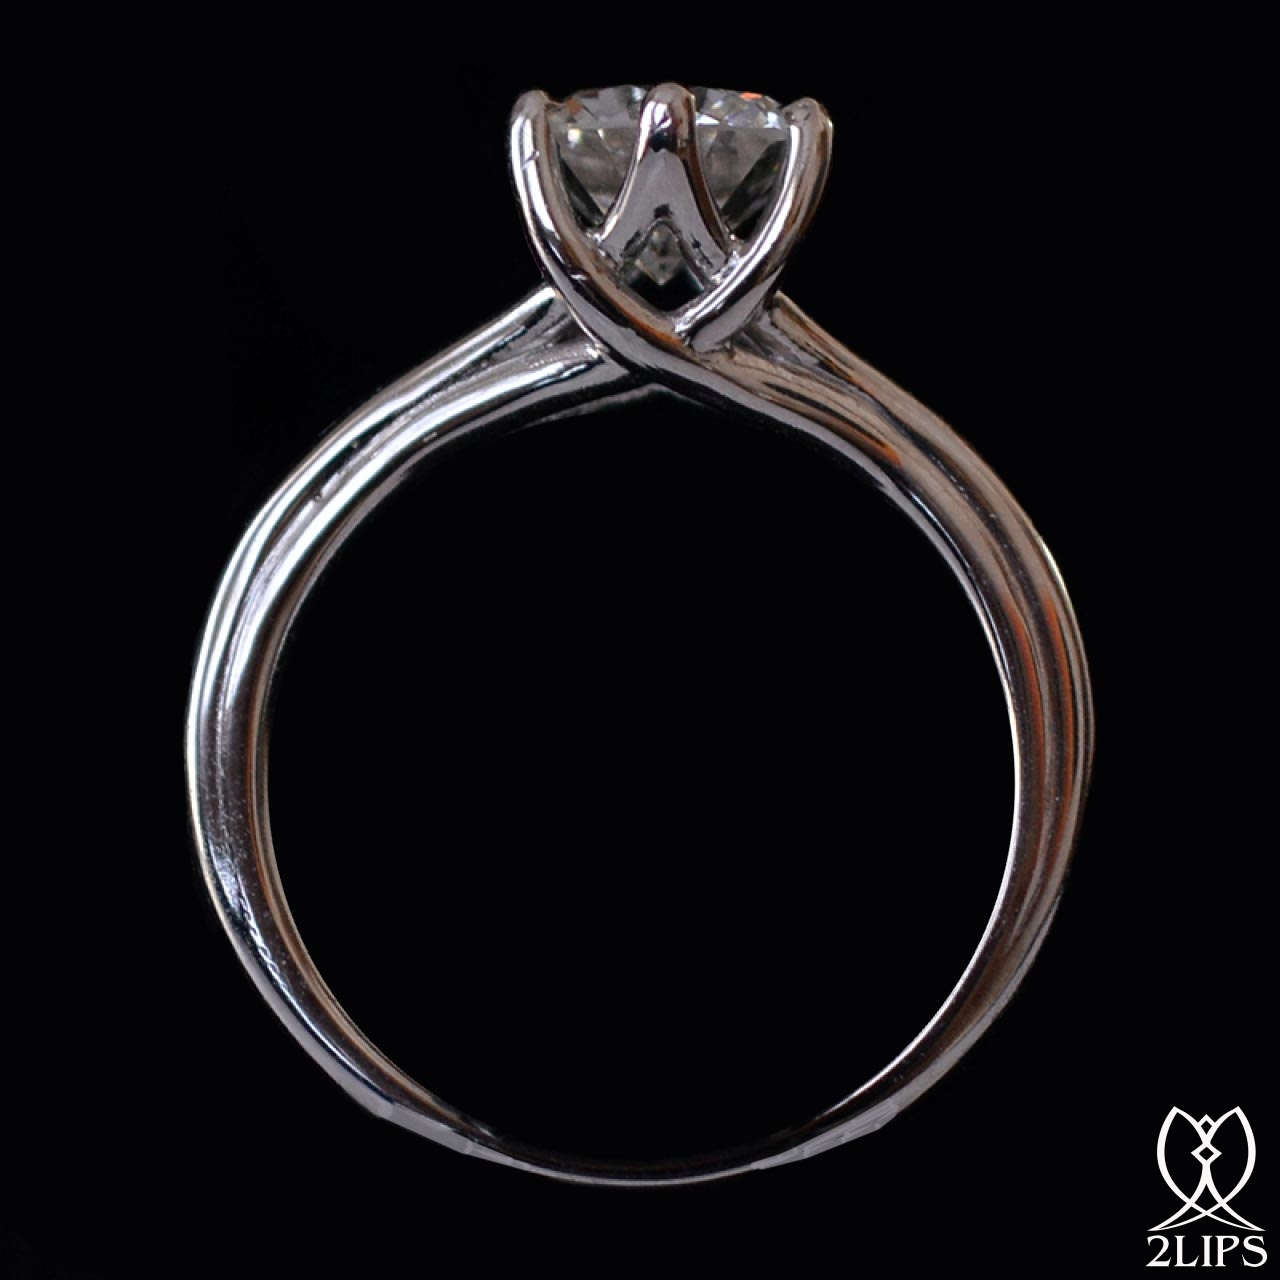 2lips-1-64-ct-top-wesselton-solitair-diamond-engagement-ring